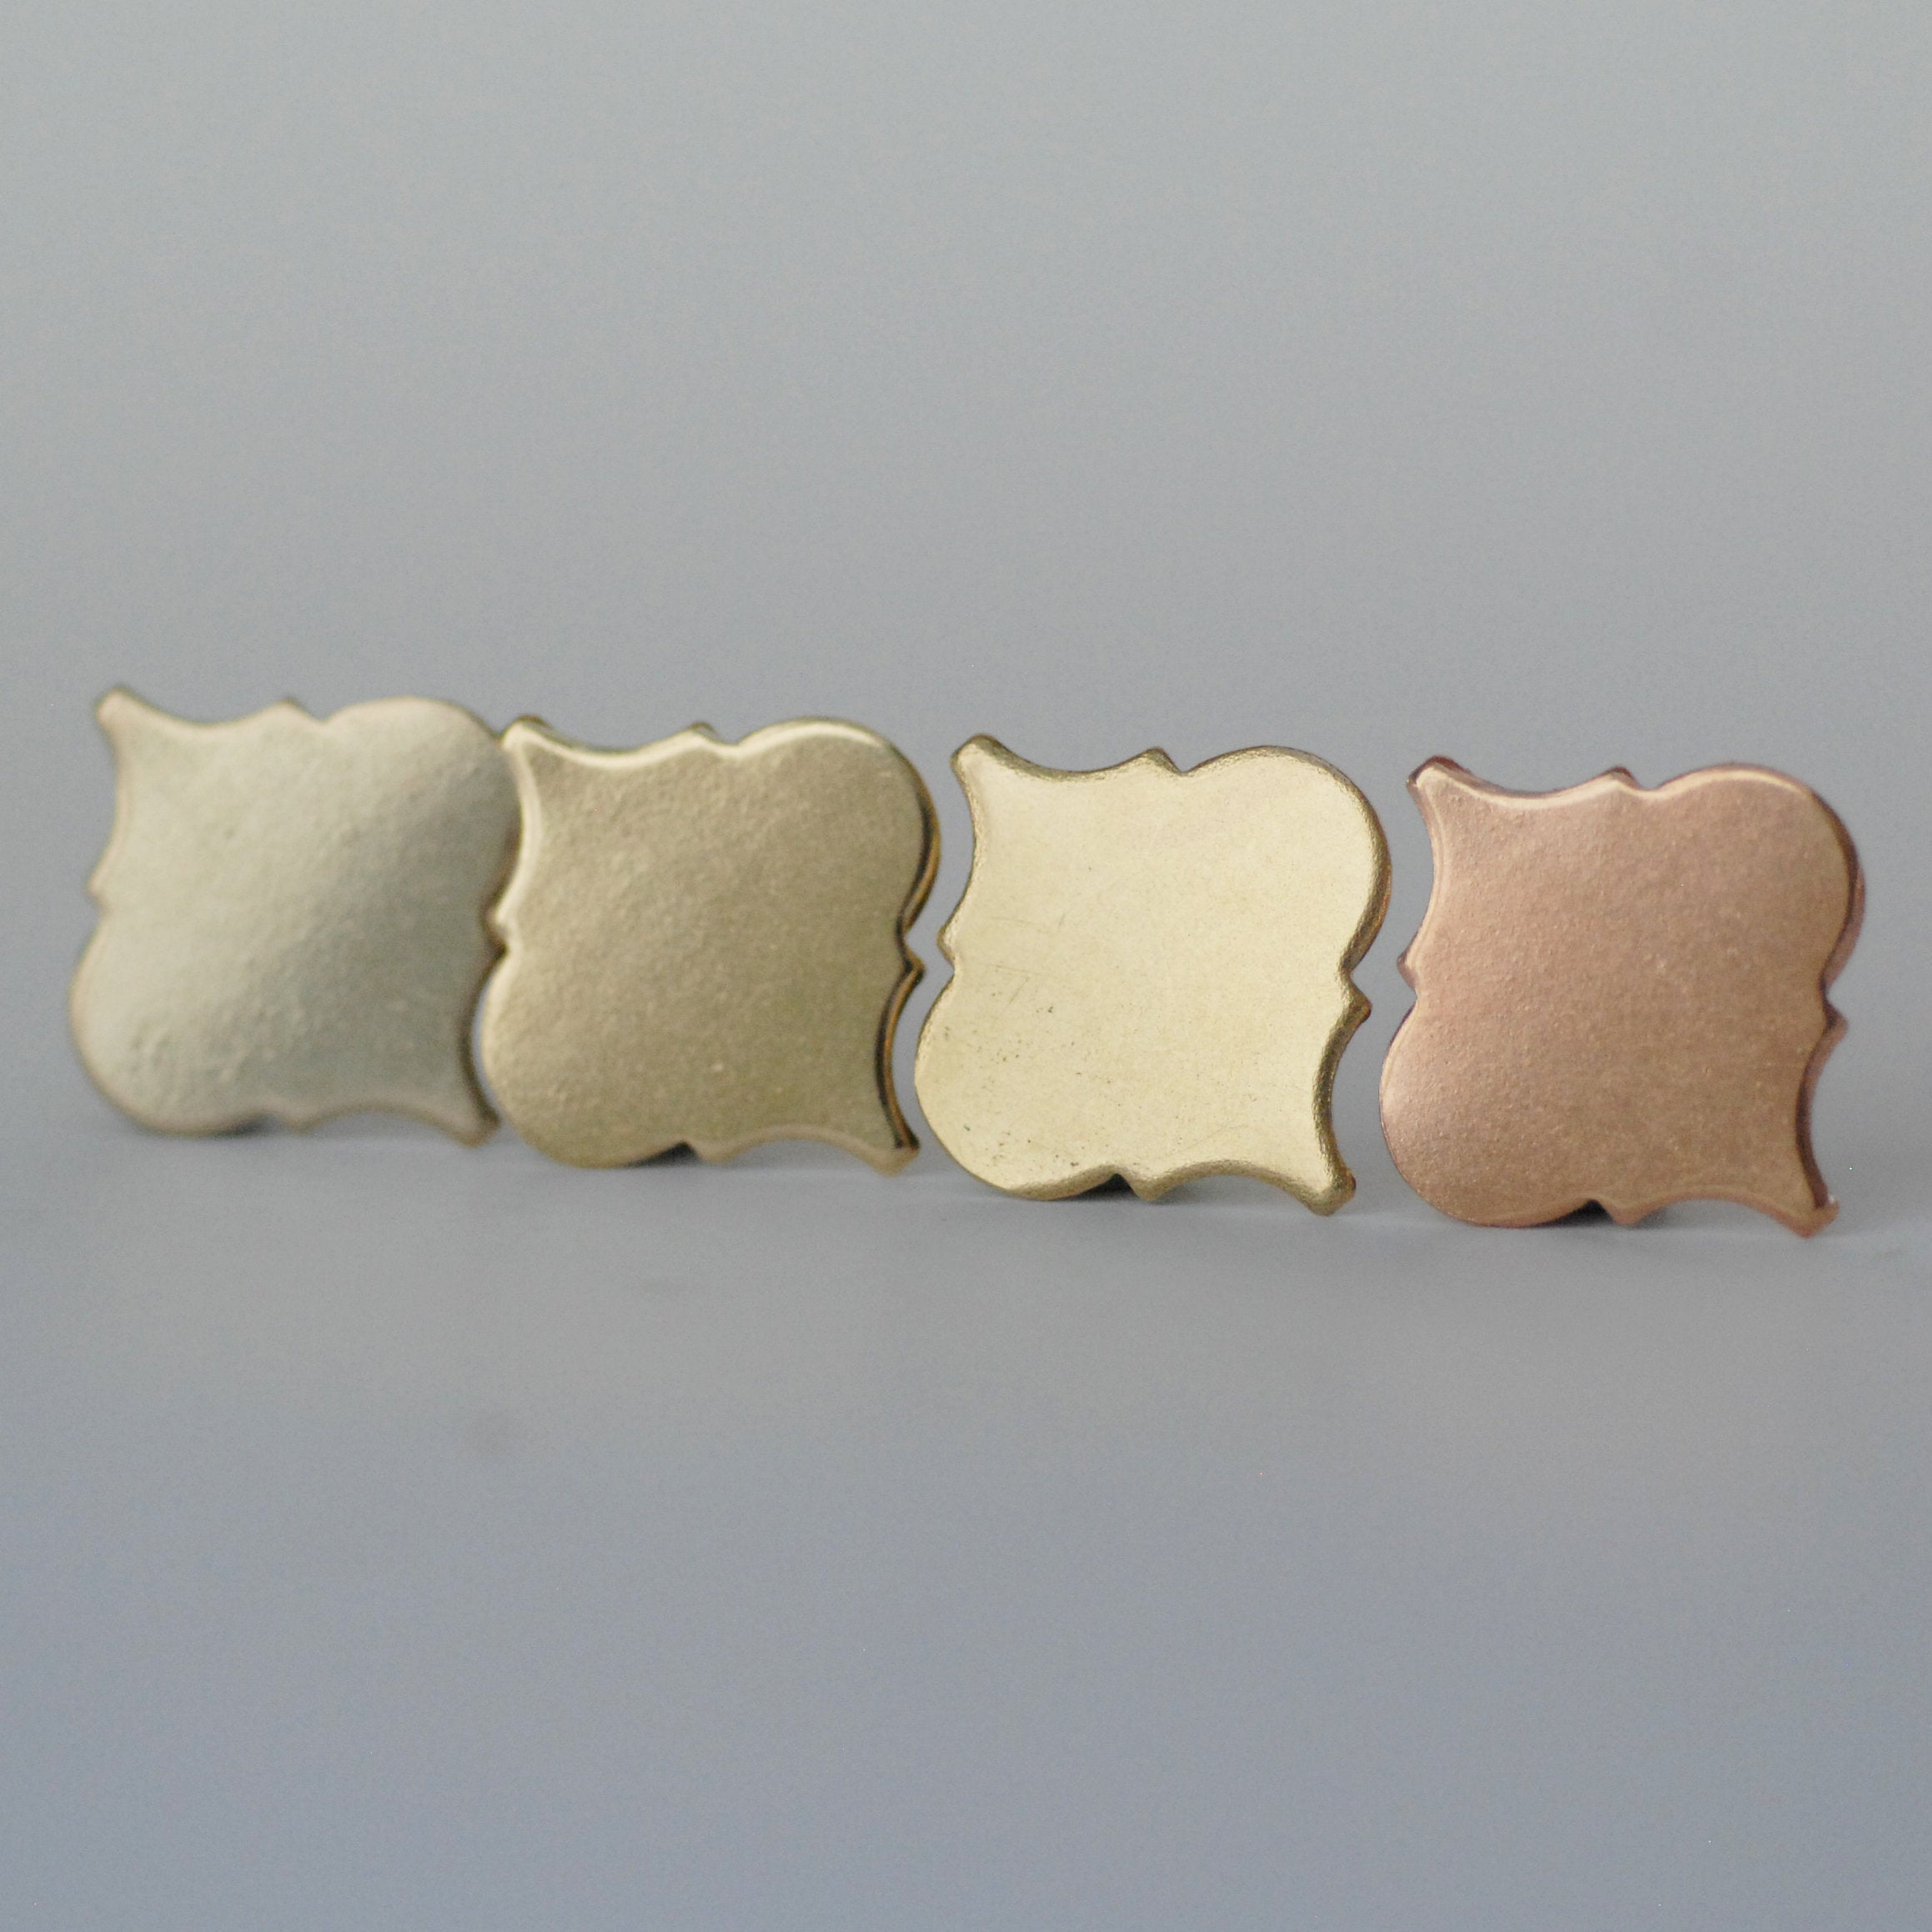 Small Moroccan Inspired metal blanks for making jewelry - copper, brass, bronze, nickel silver